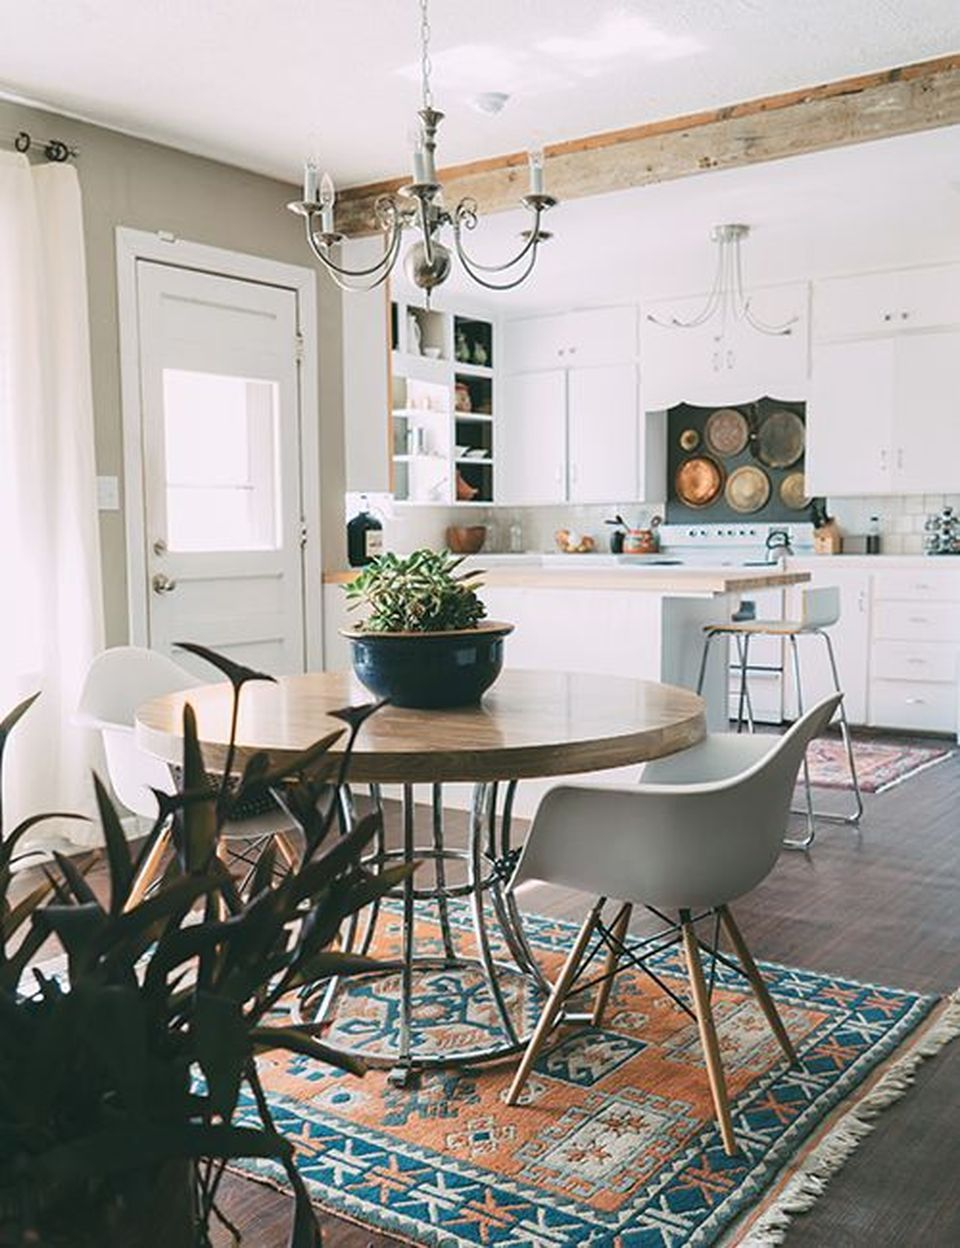 ideas to create rustic bohemian kitchen decorations bohemian